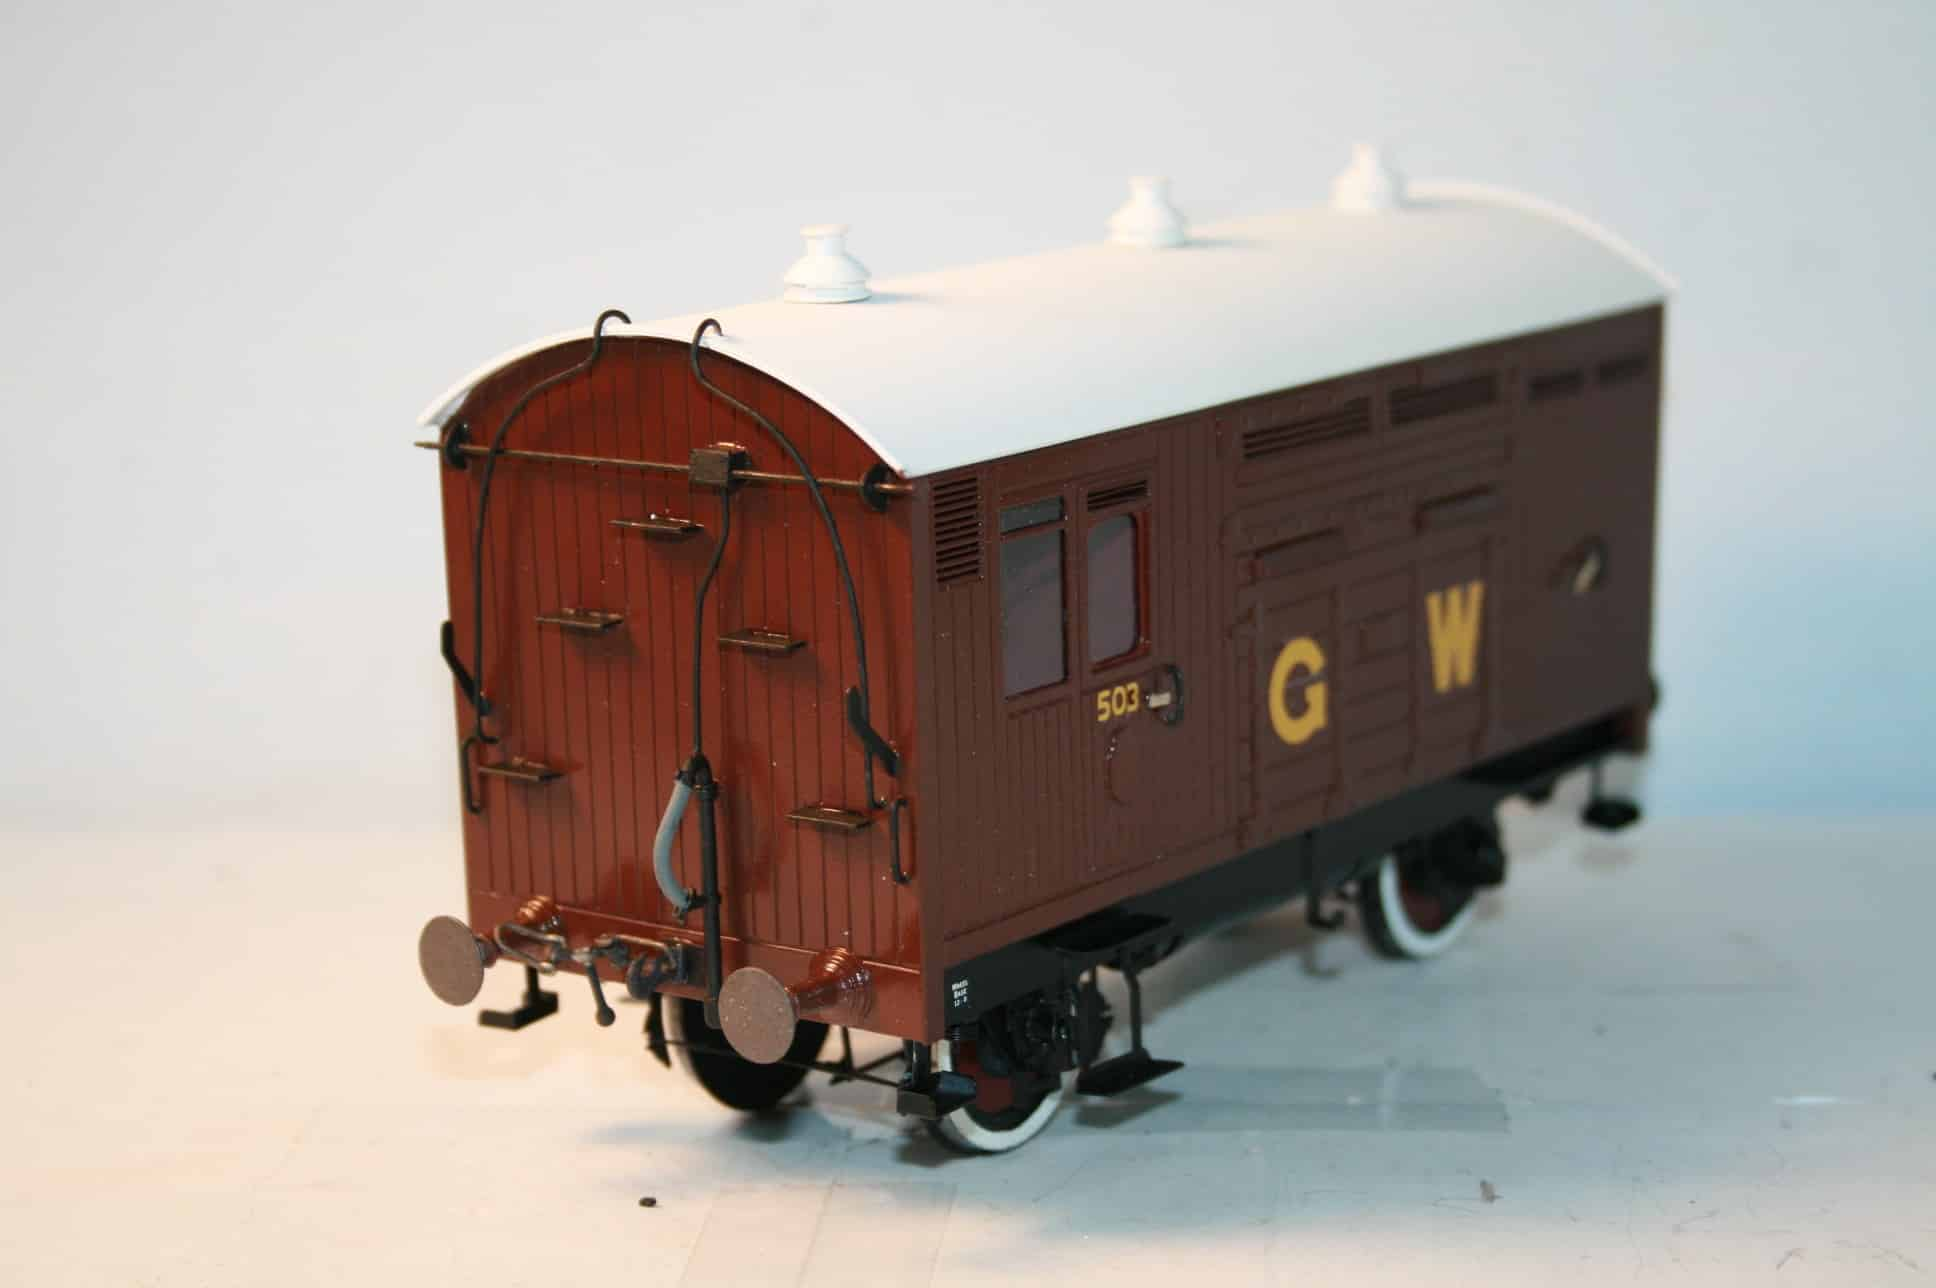 GWR (Ex. Taff Vale) Horsebox r/n 503 in brown livery